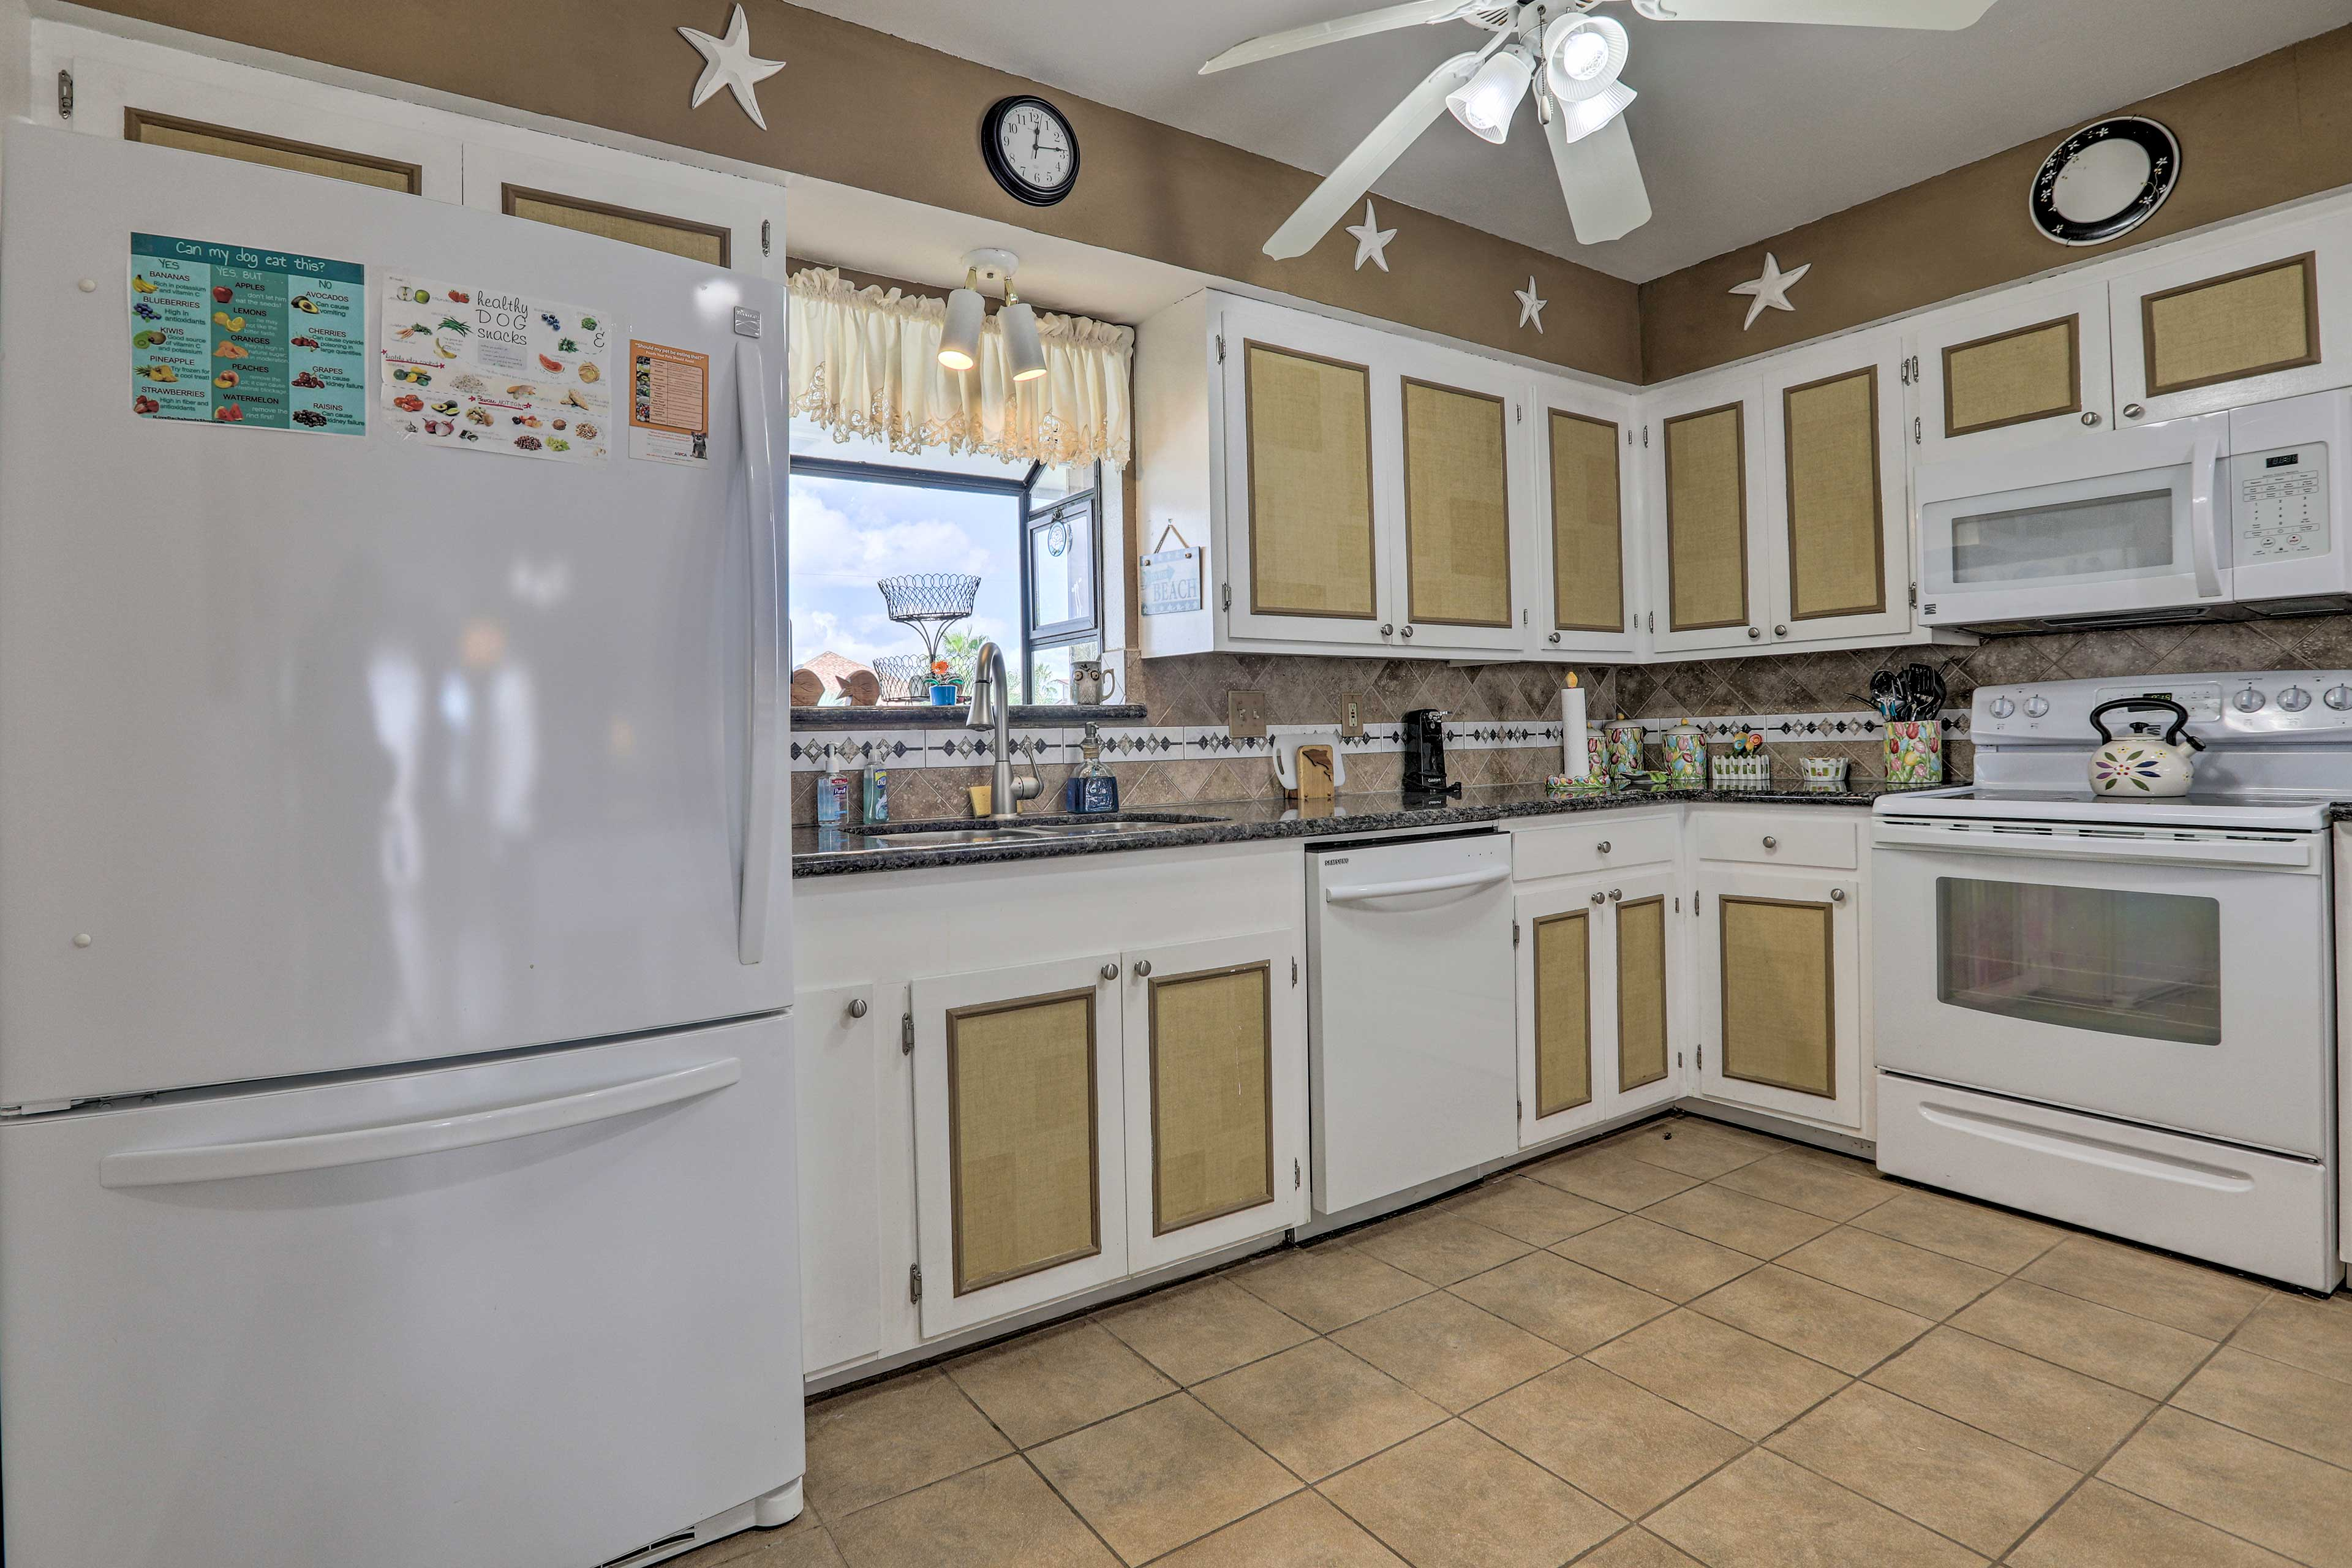 Make this kitchen your own and show off your culinary skills!